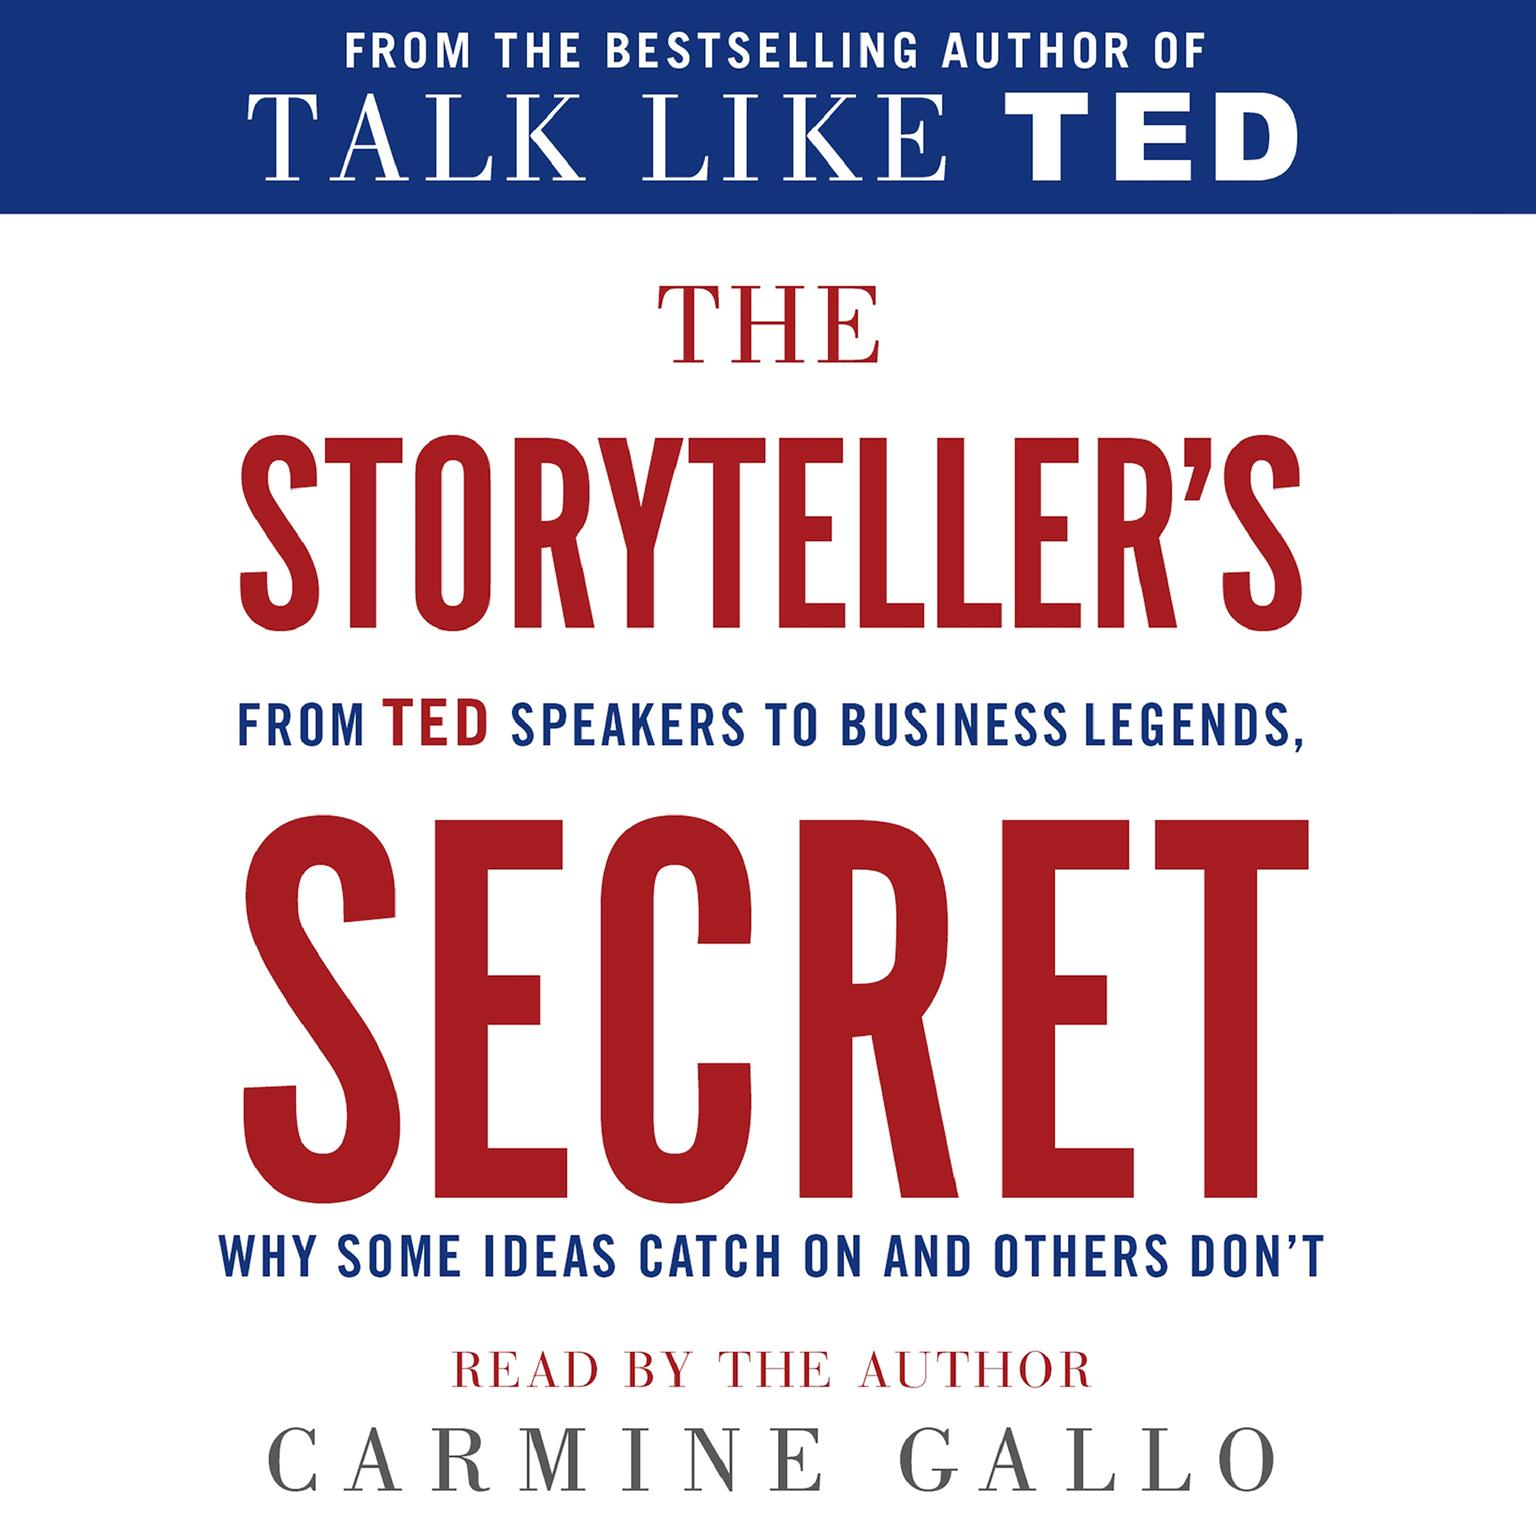 Printable The Storyteller's Secret: From TED Speakers to Business Legends, Why Some Ideas Catch On and Others Don't Audiobook Cover Art